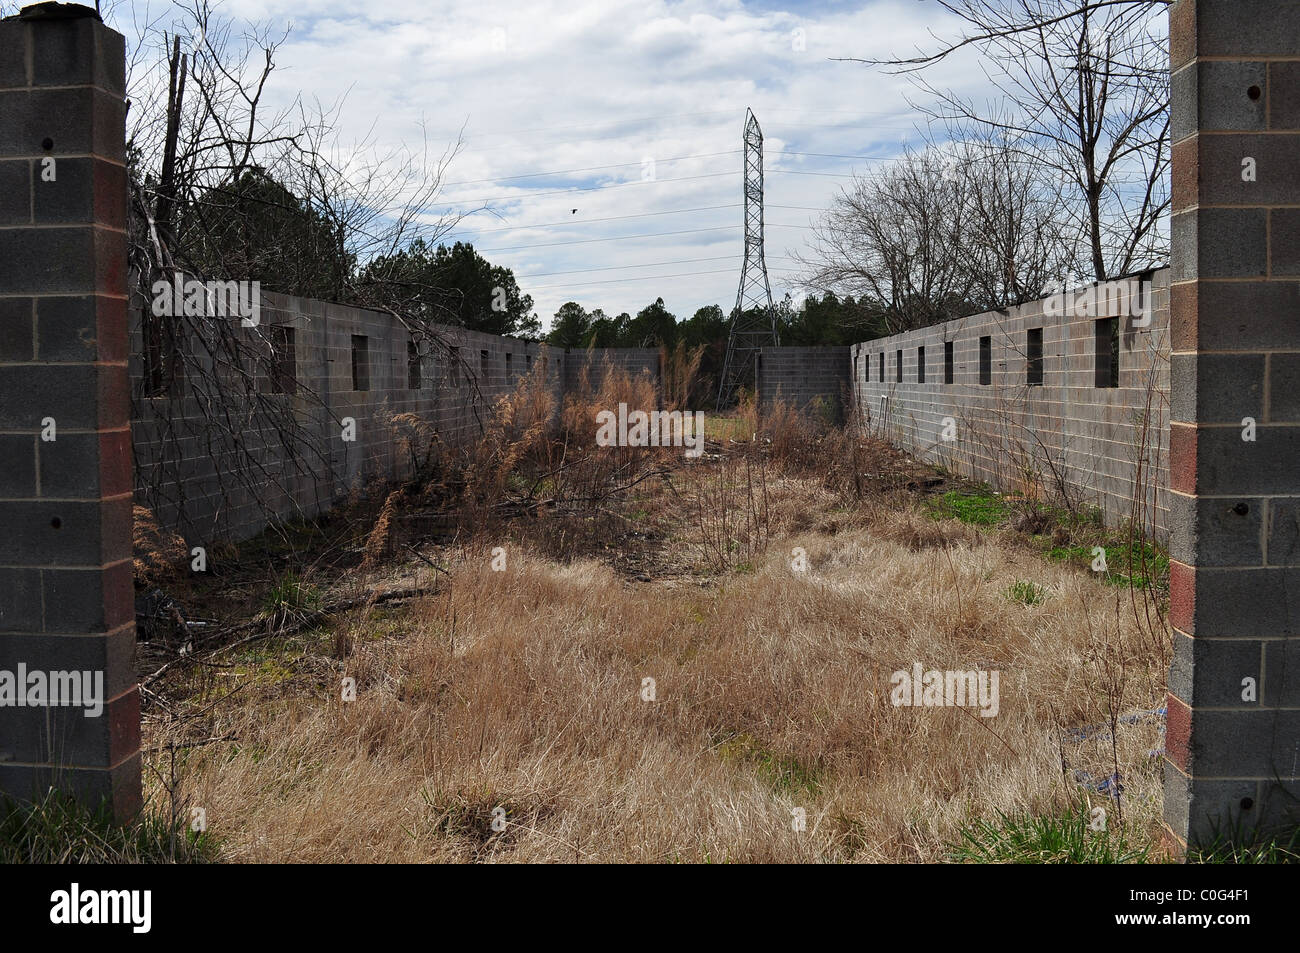 A demolished structure that has been overgrown with weeds, with power lines sitting in the background. - Stock Image